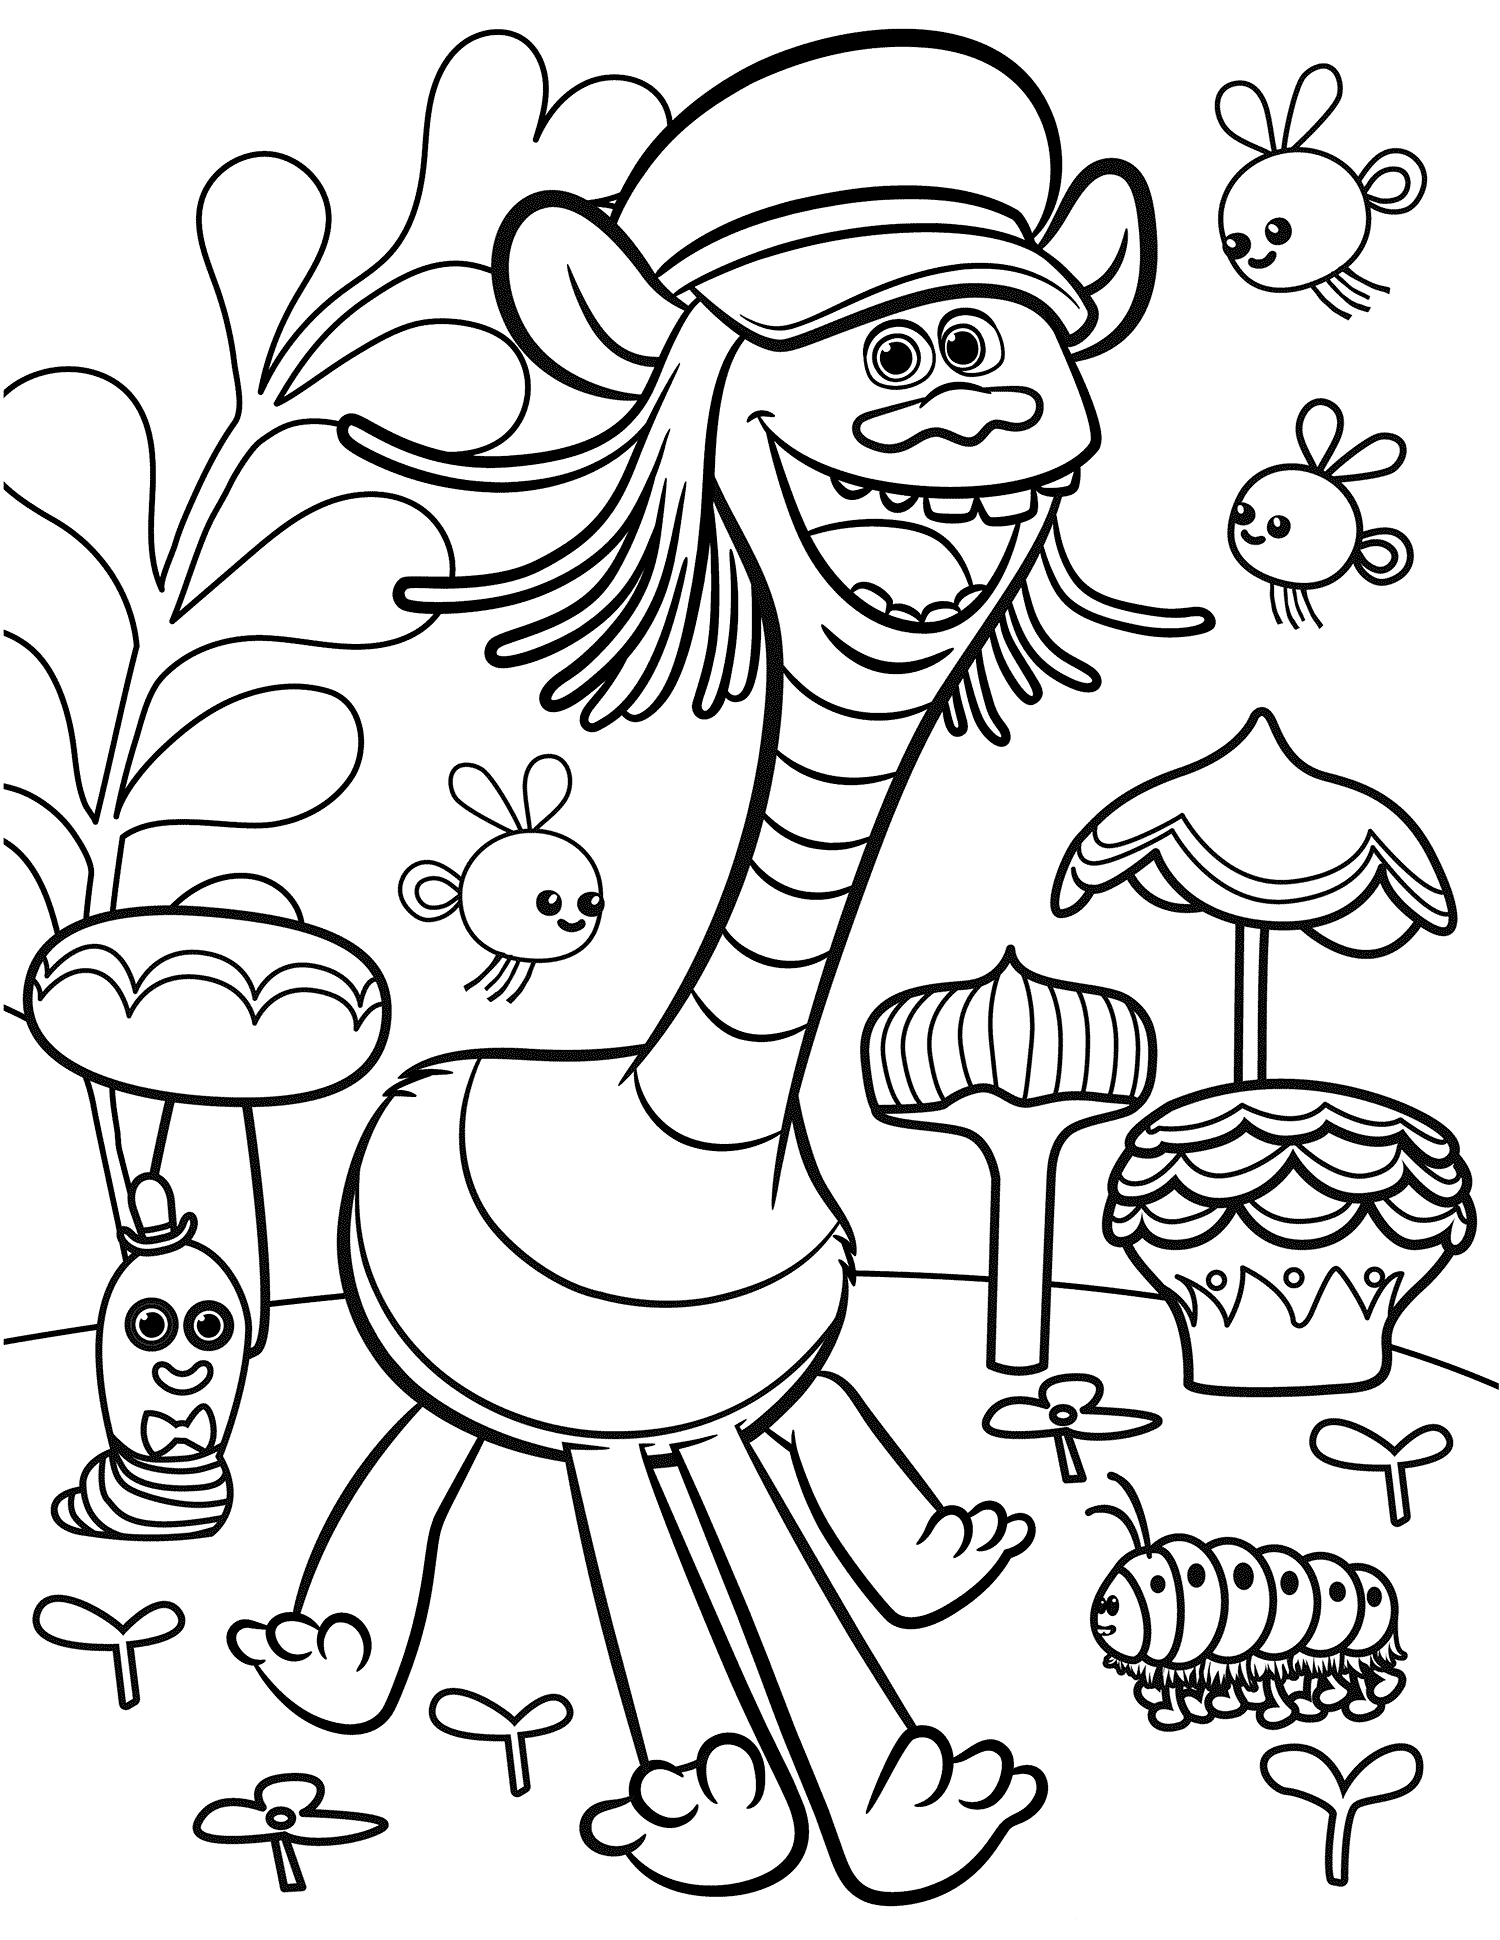 Trolls movie coloring pages best coloring pages for kids for Free color page printables